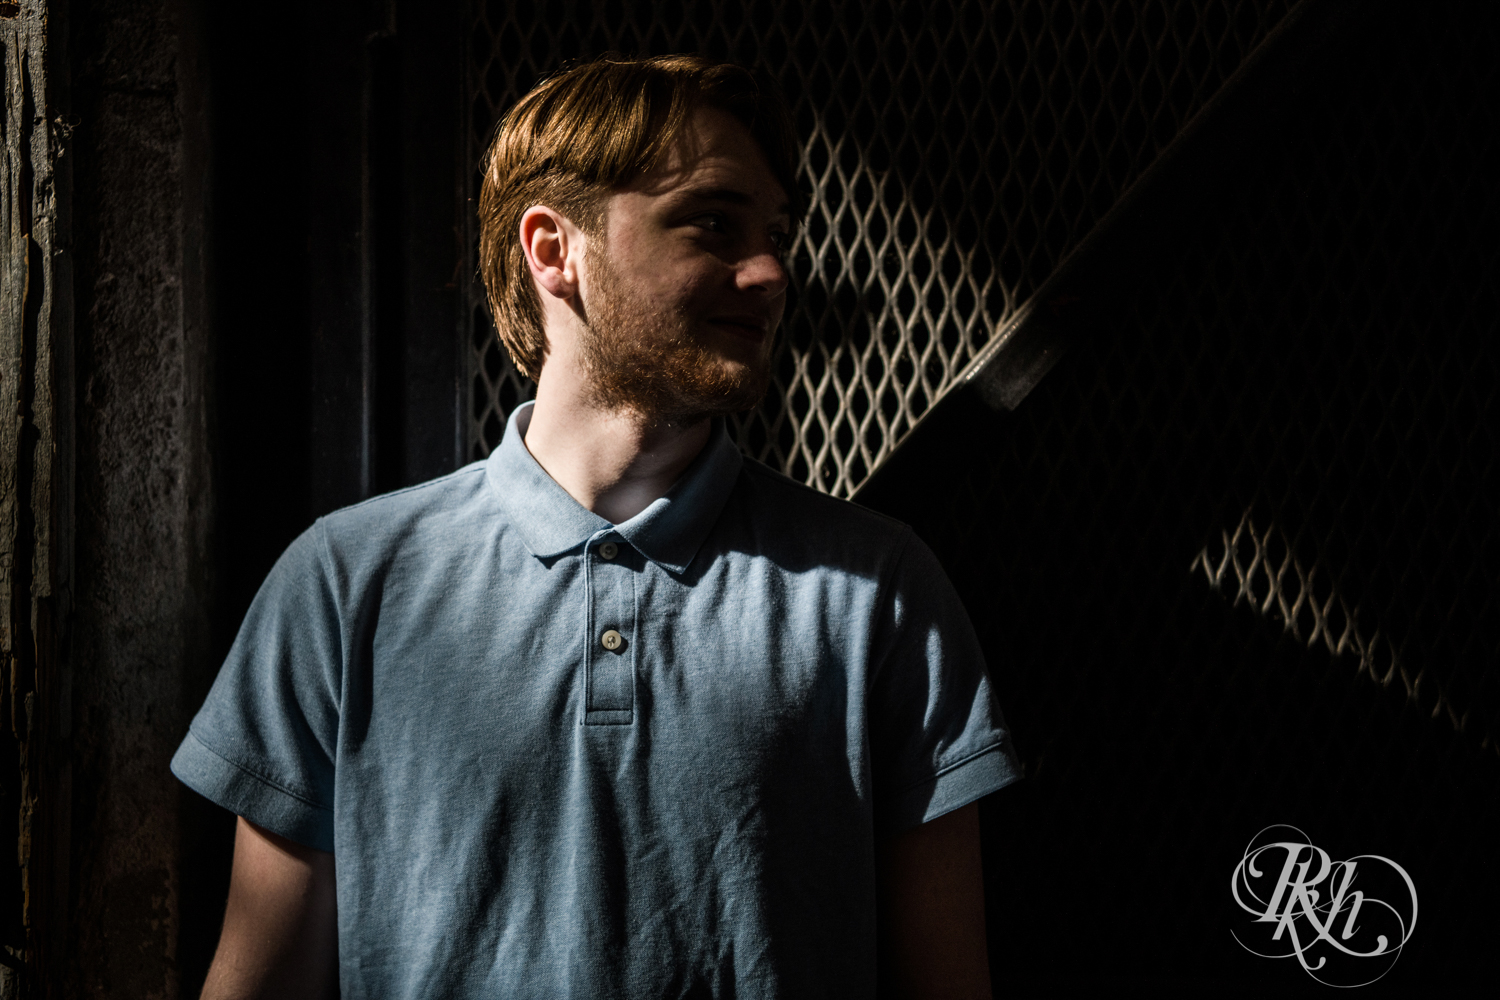 Kevin - Minnesota Senior Photography - Class of 2019 - Mill City Ruins -  RKH Images  (4 of 9).jpg